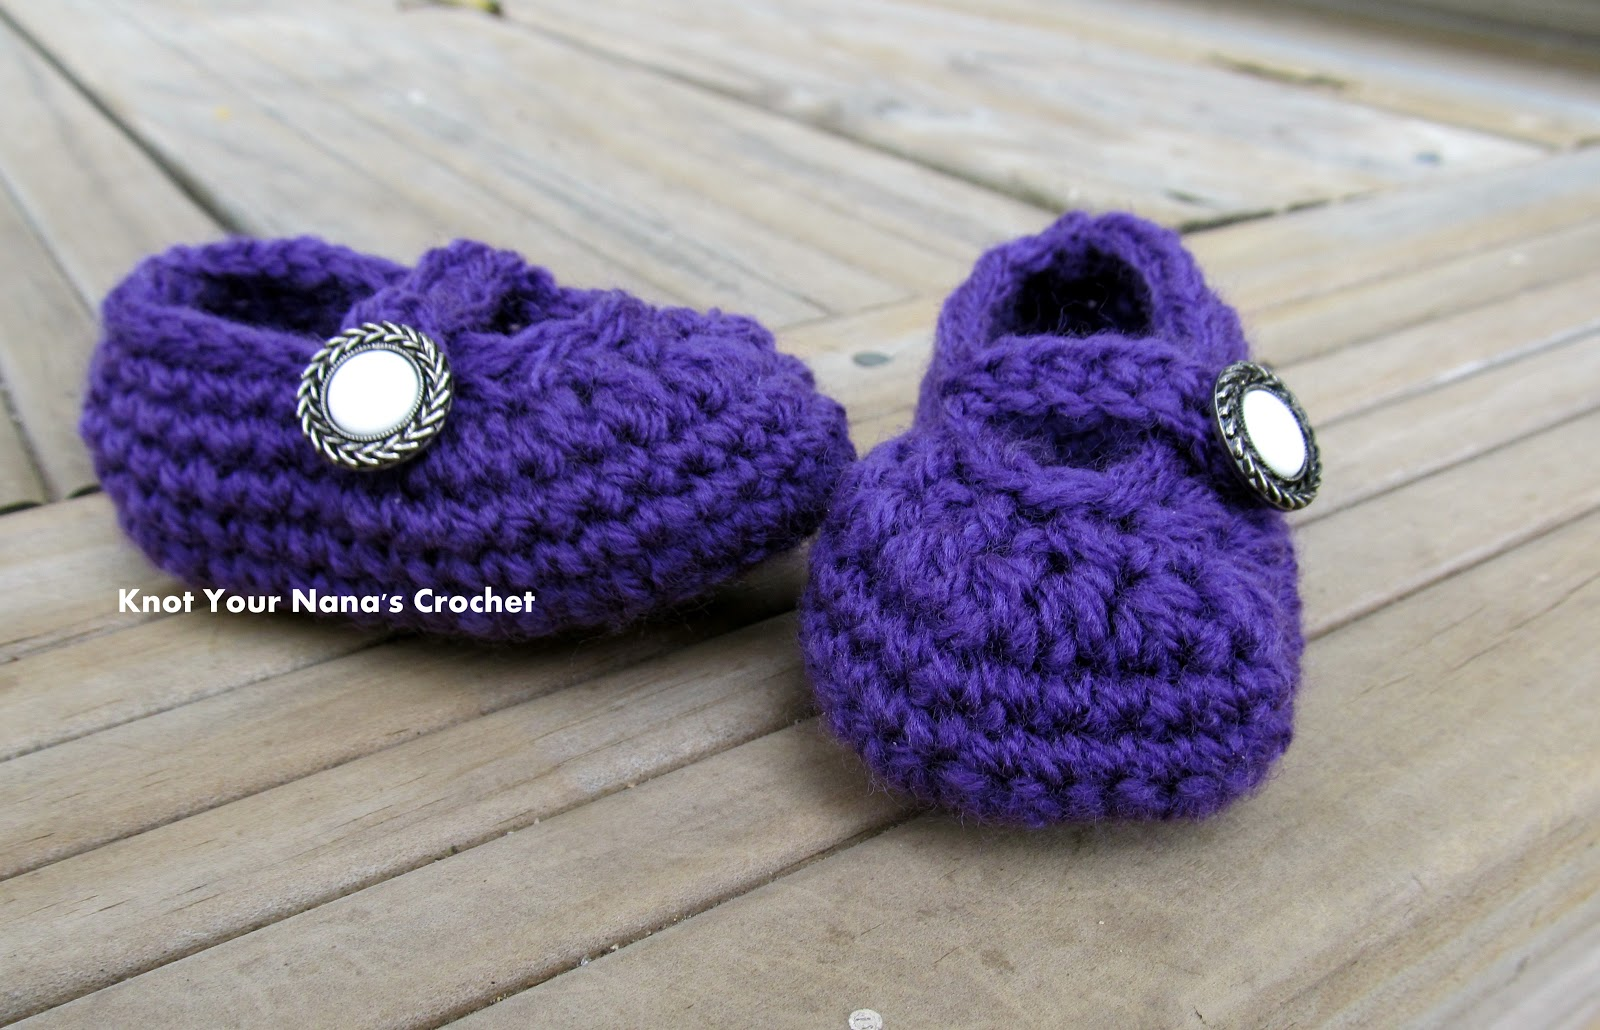 Free Crochet Patterns For Baby Booties Mary Janes : Knot Your Nanas Crochet: Crochet booties with strap: Free ...